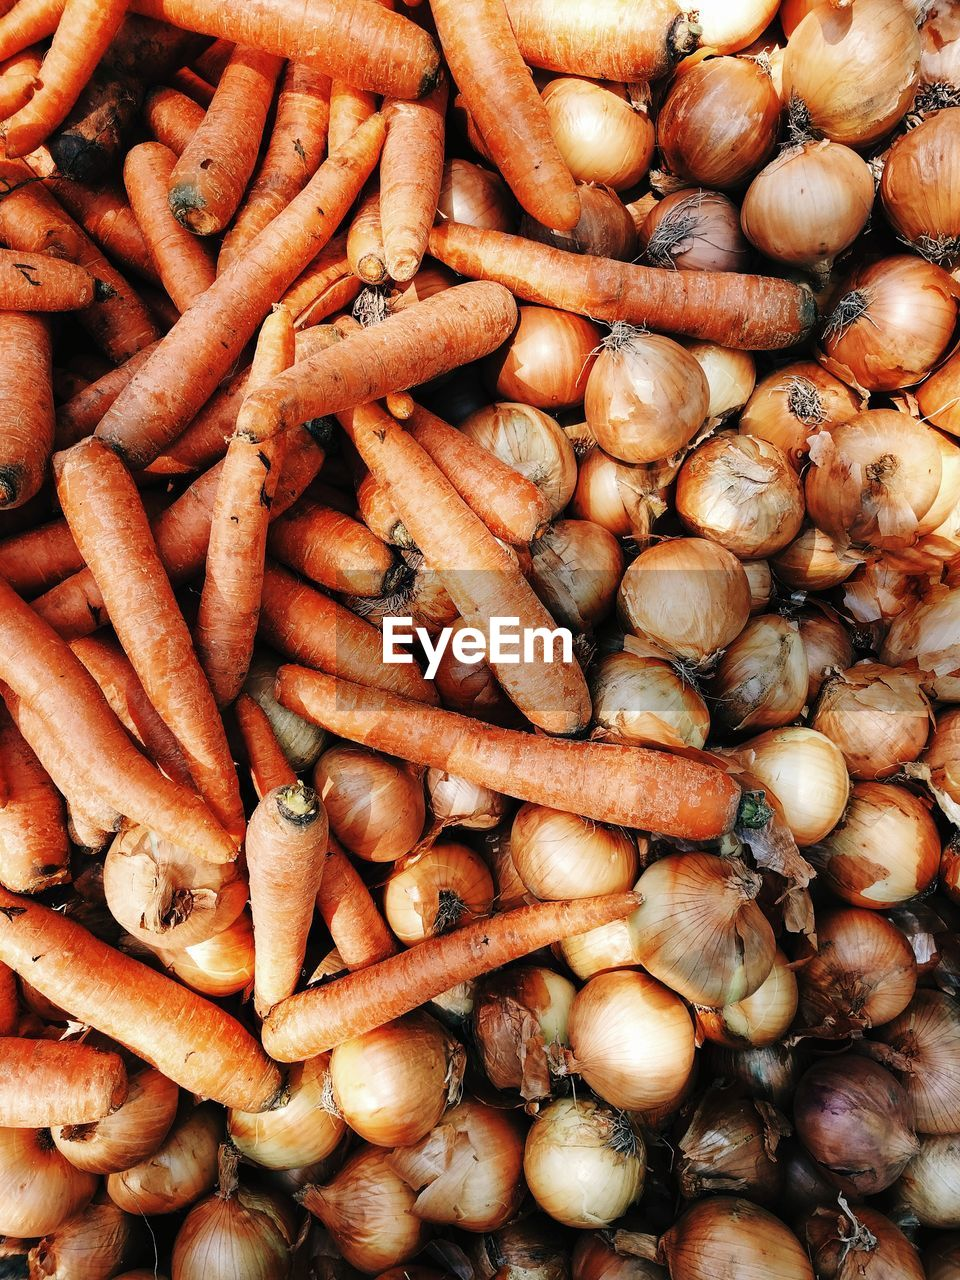 Full Frame Shot Of Carrots And Onions